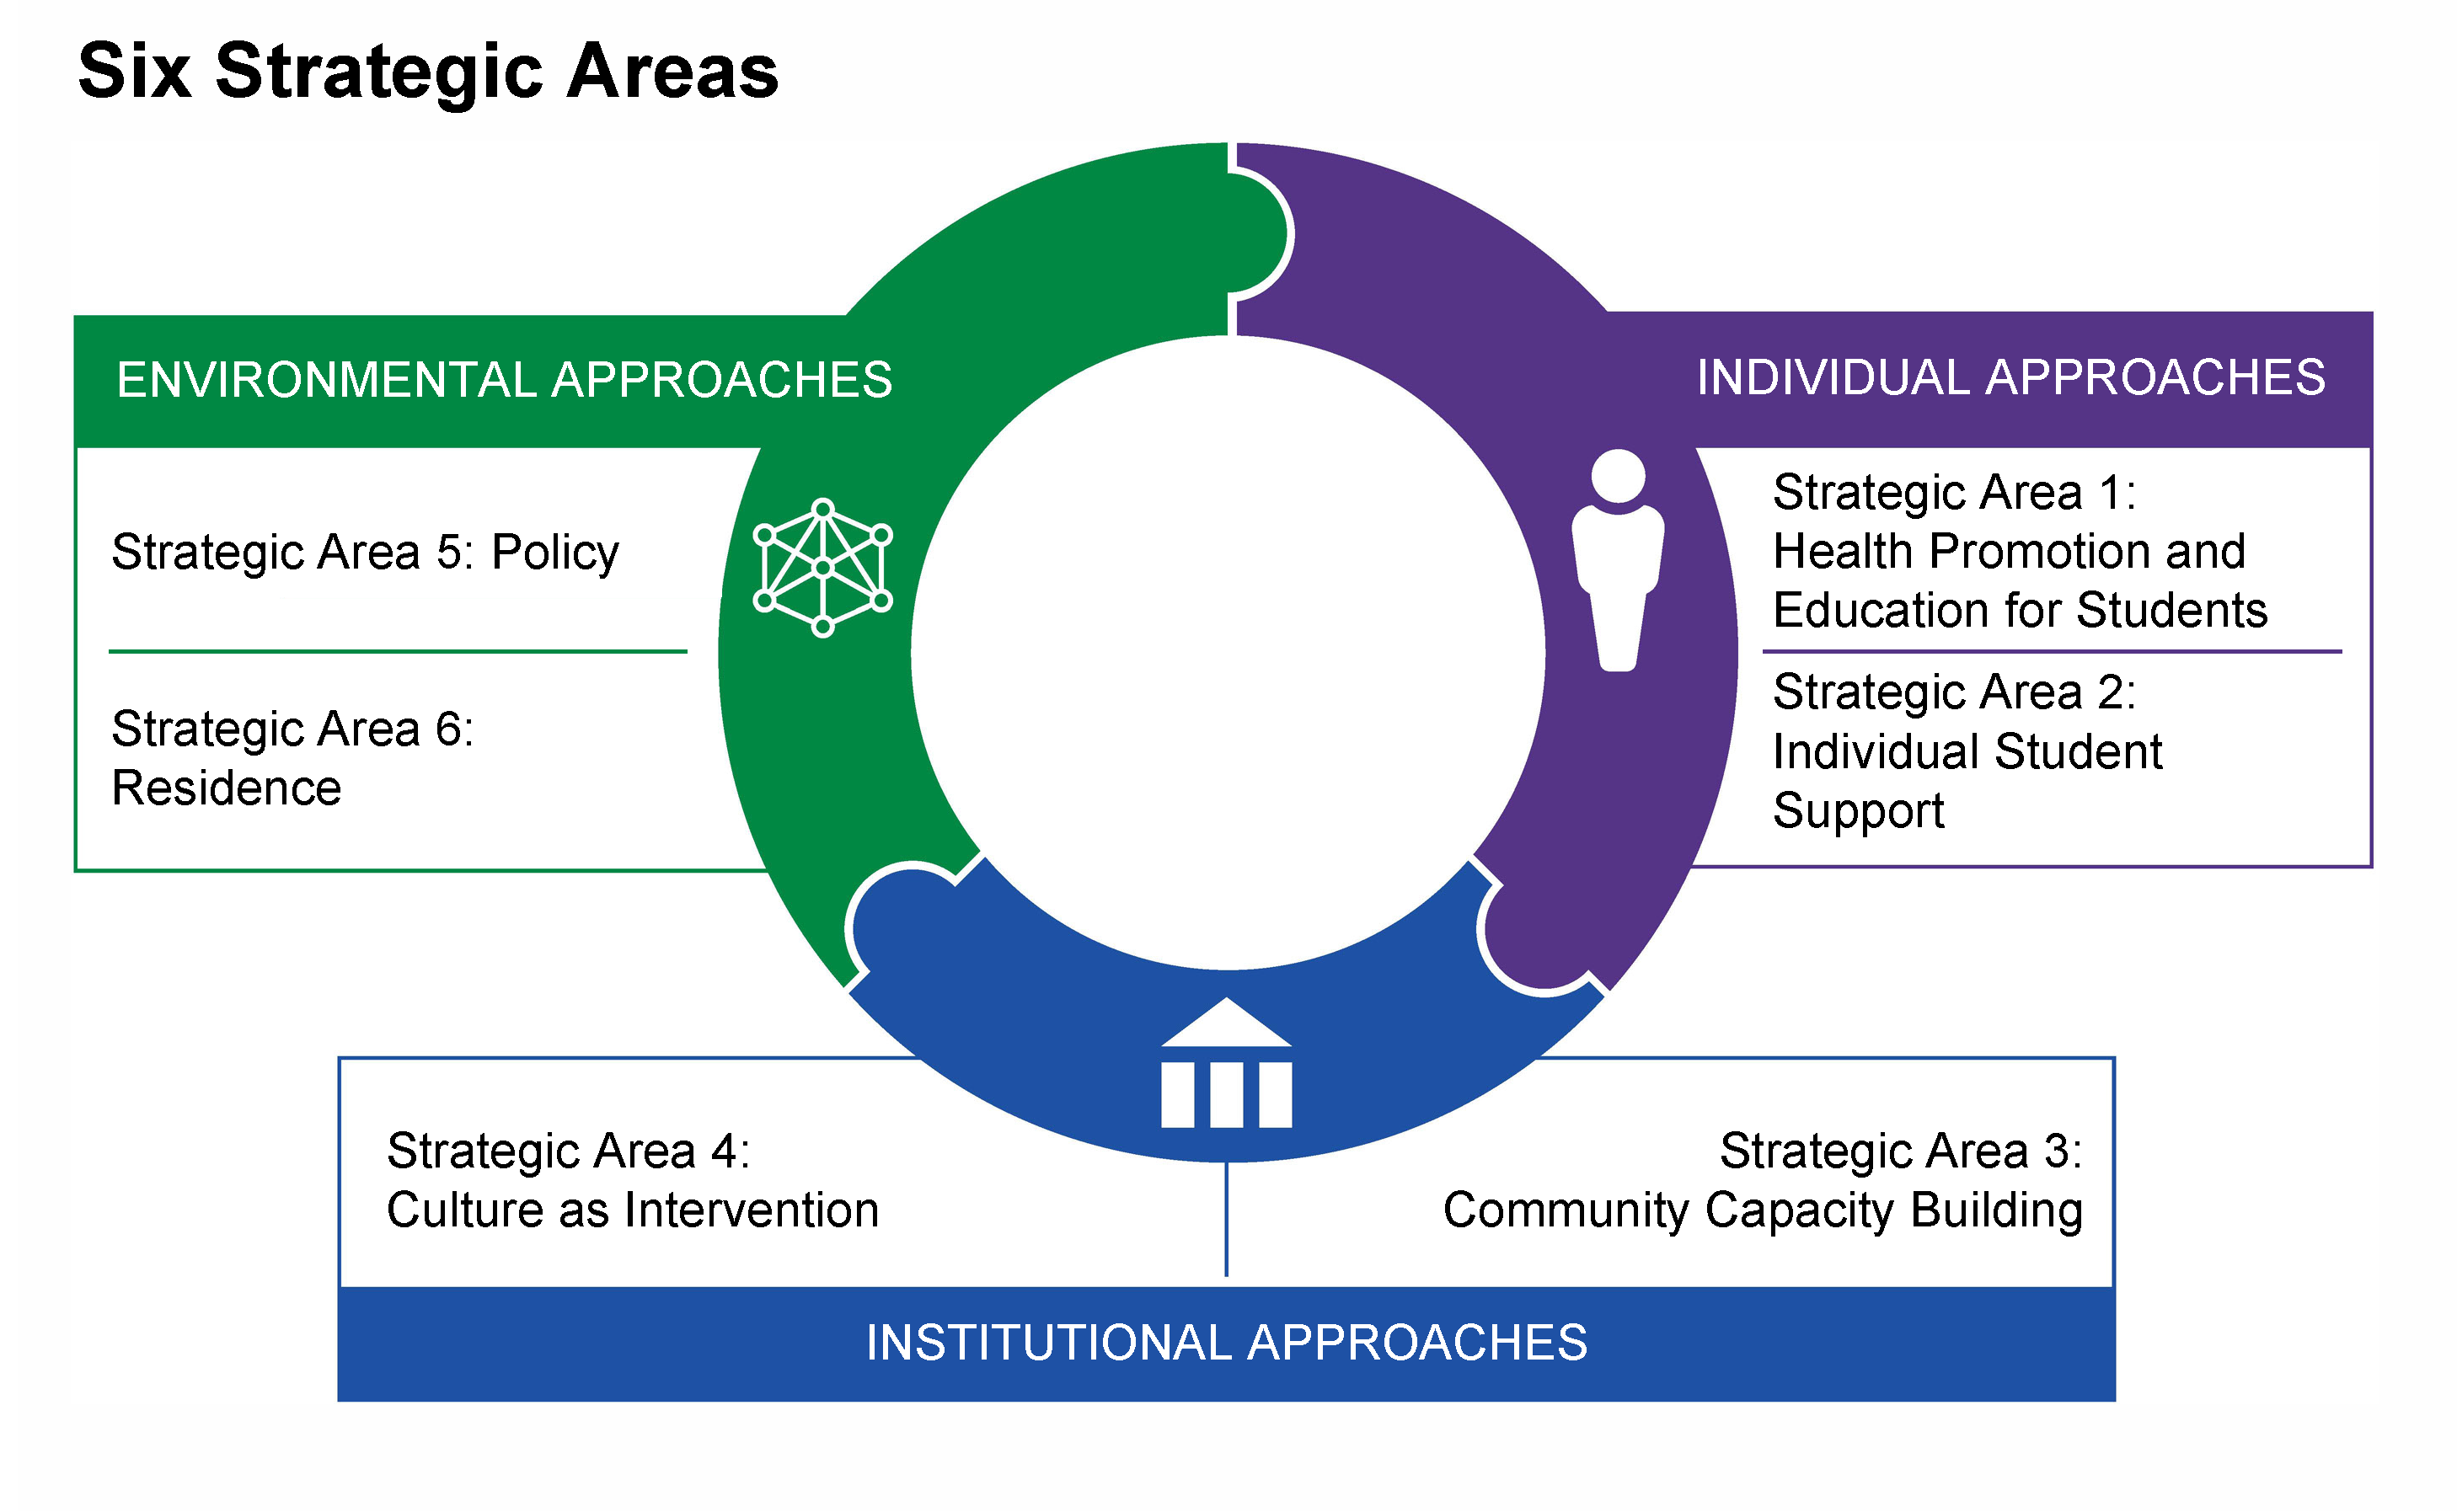 Six Strategic Areas